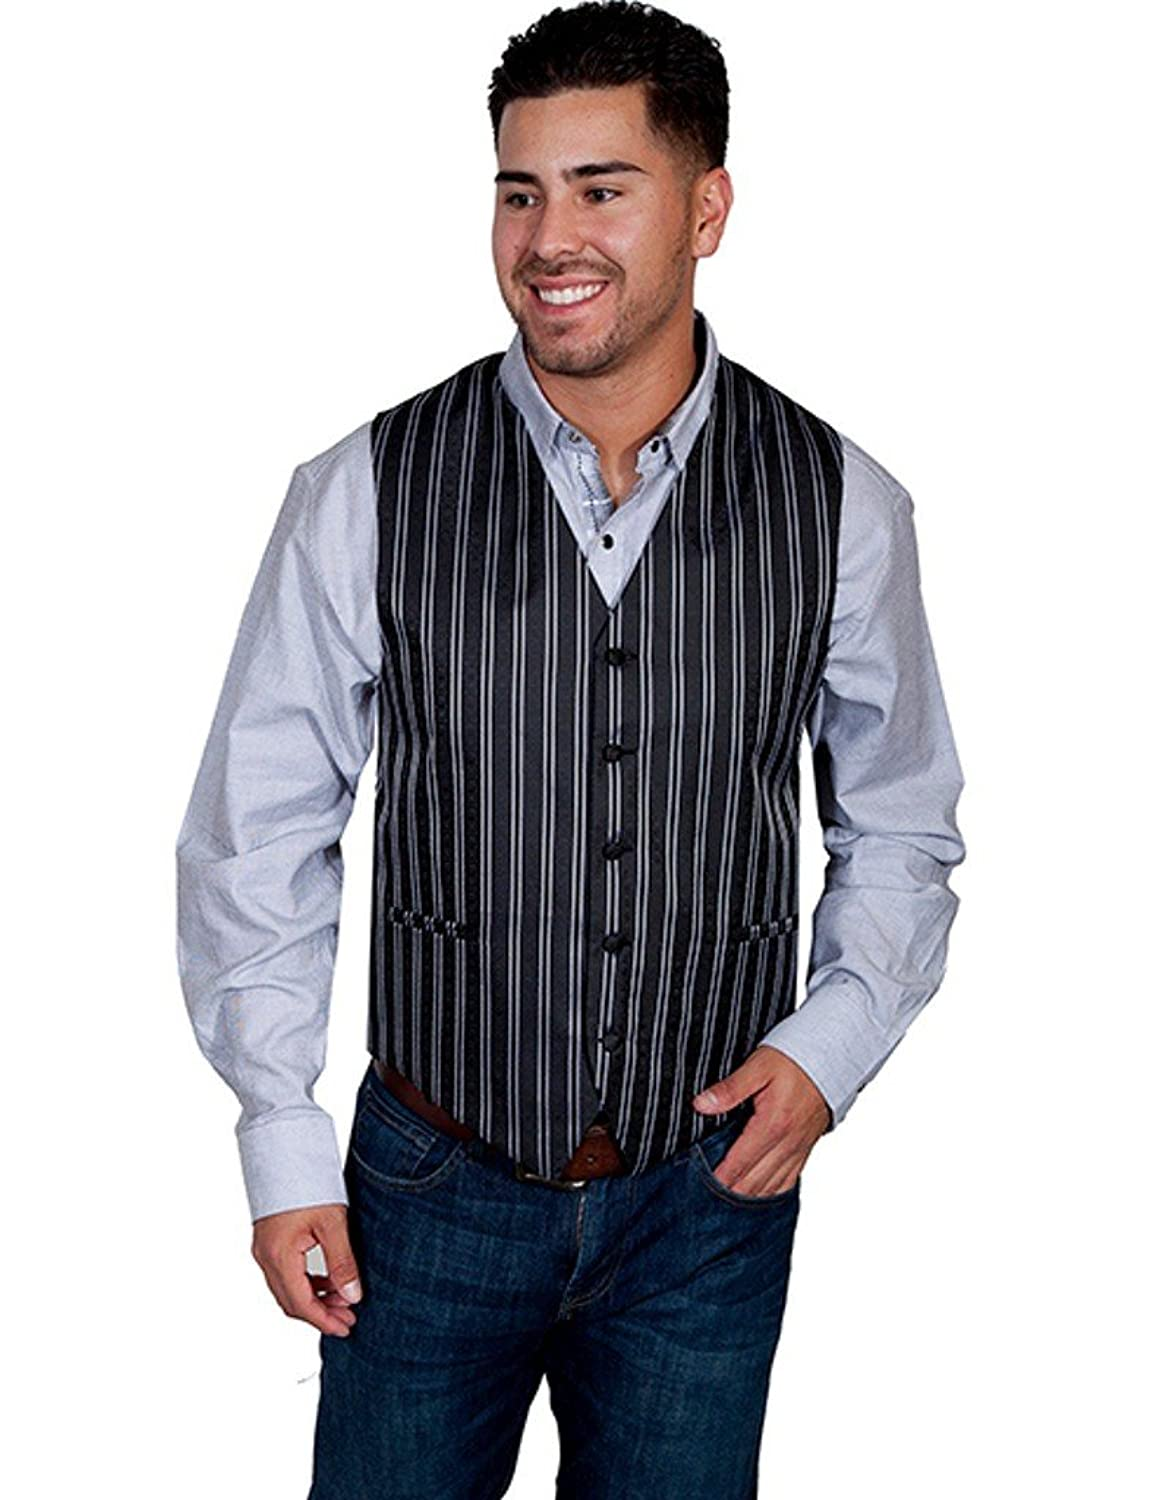 Men's Vintage Inspired Vests BIg TALL Sophisticated Double Pinstripe Western Vest $55.05 AT vintagedancer.com